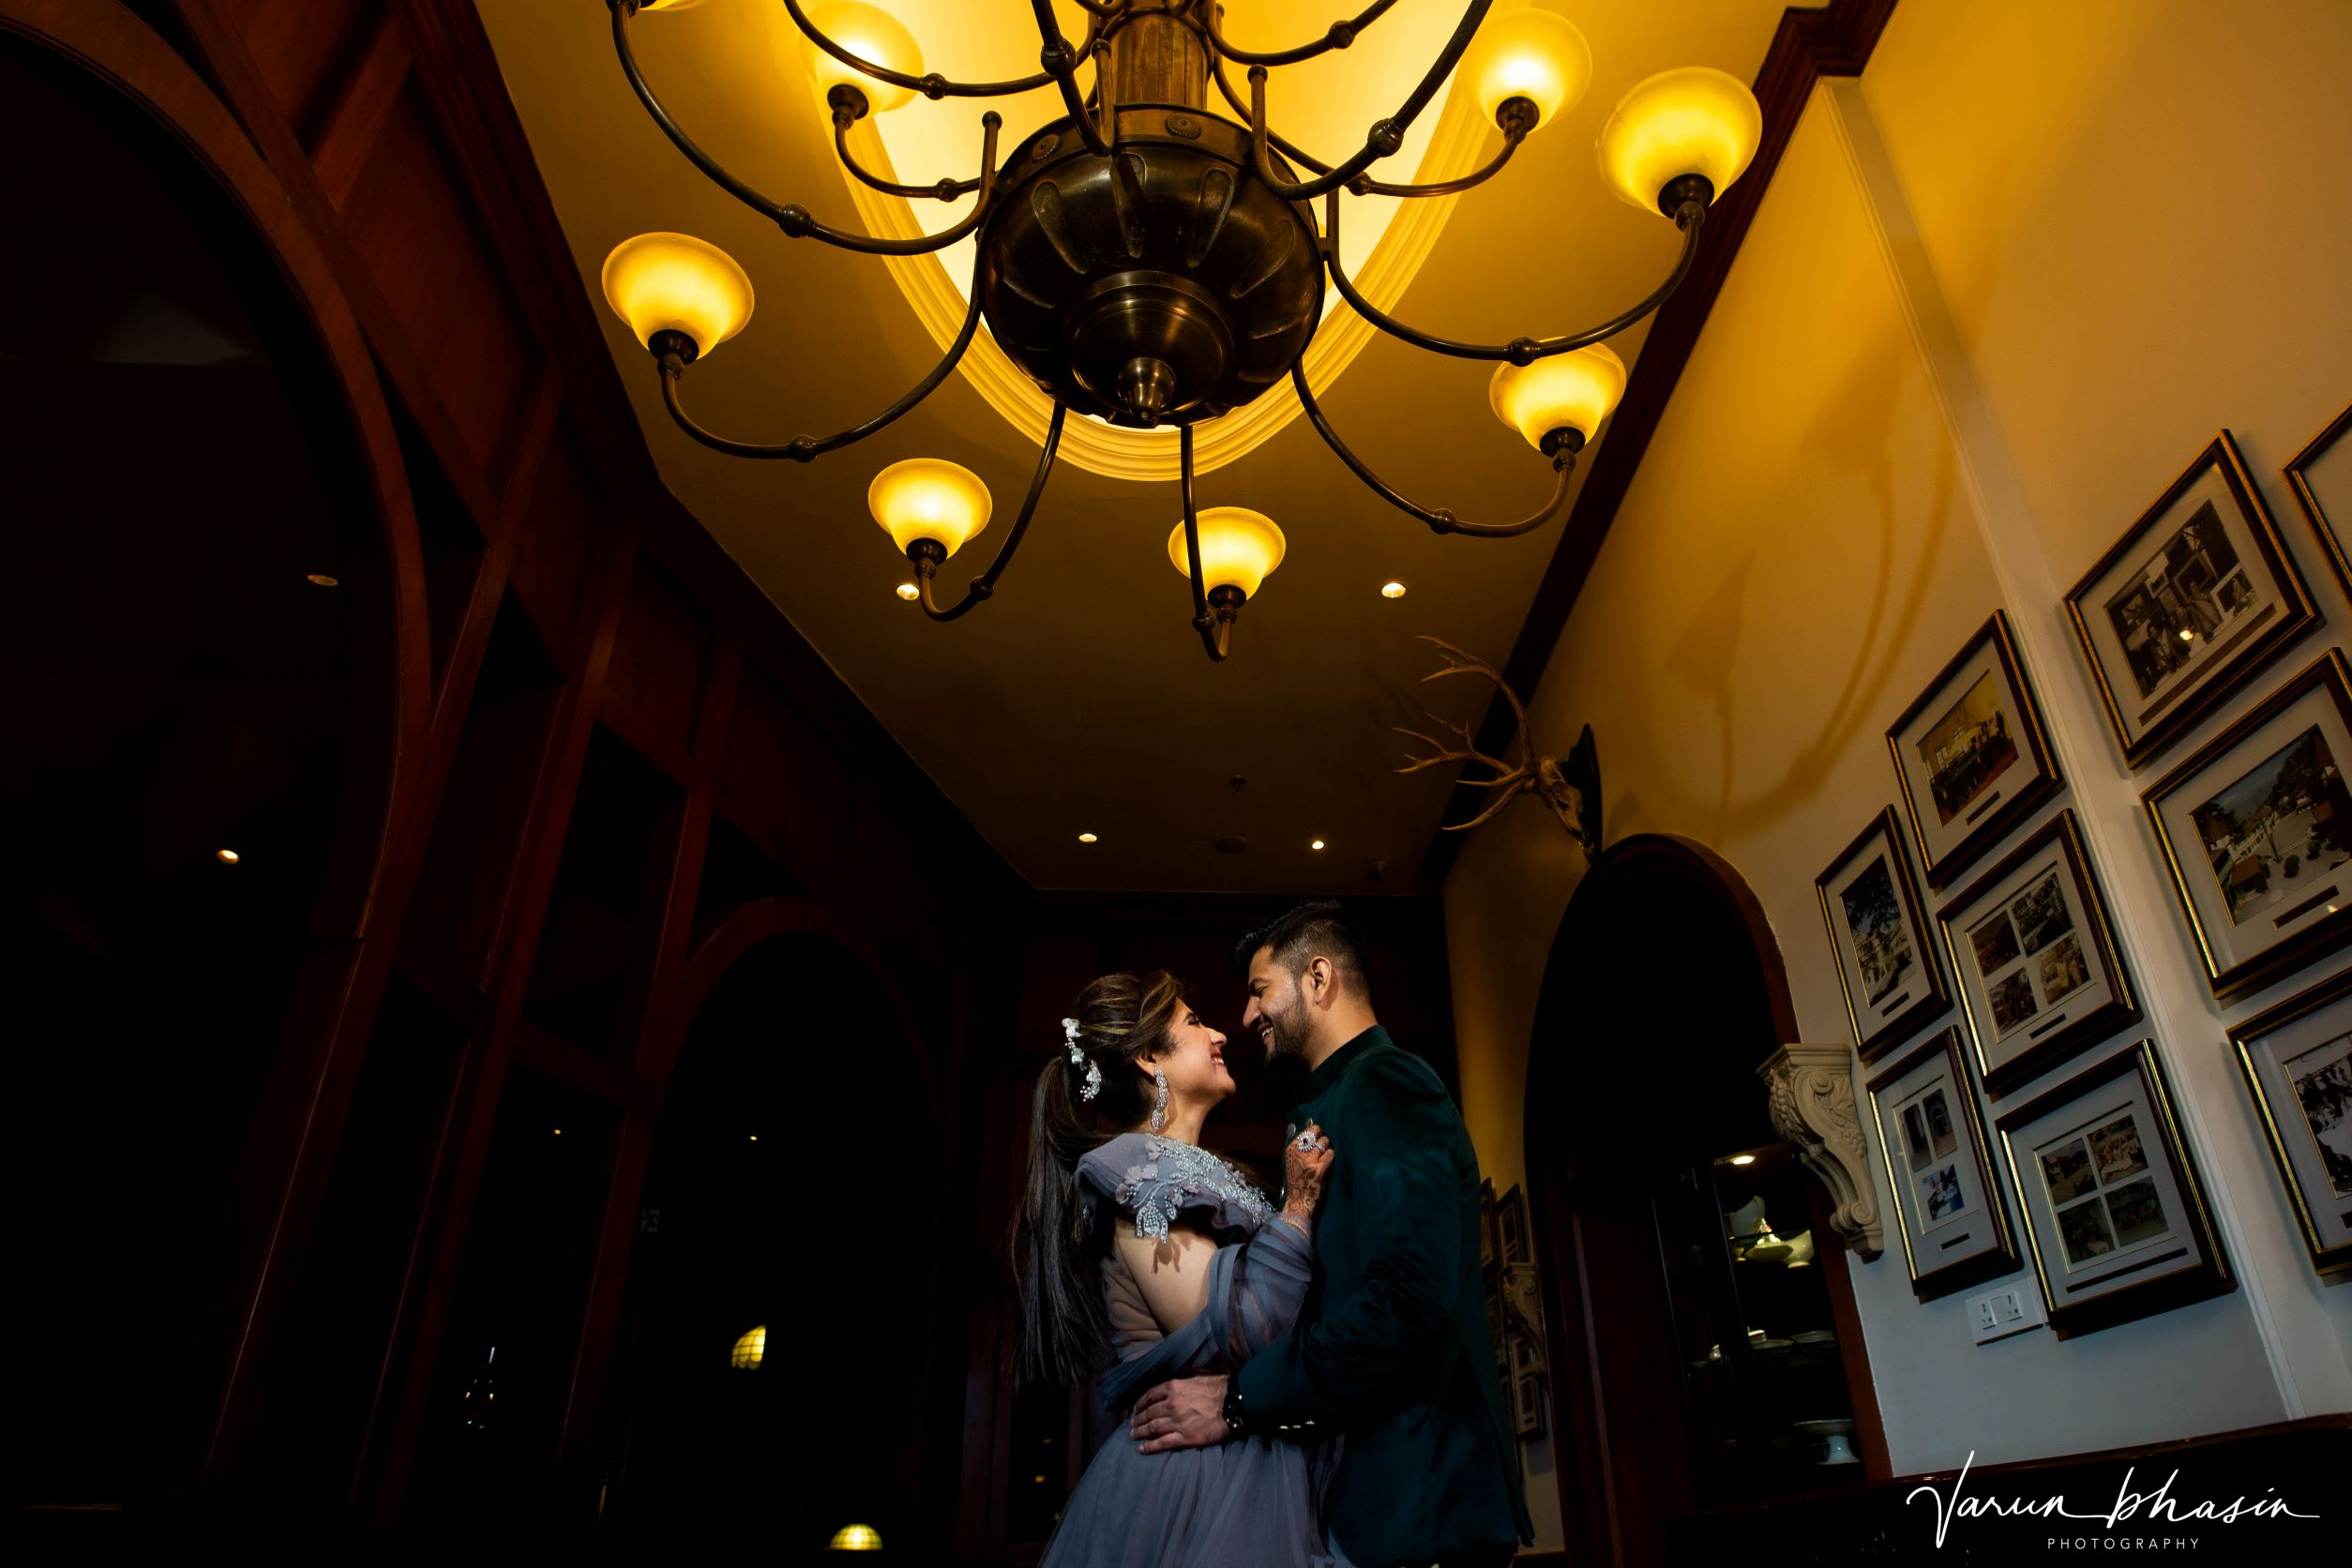 candid shot of the couple under a chandeliar